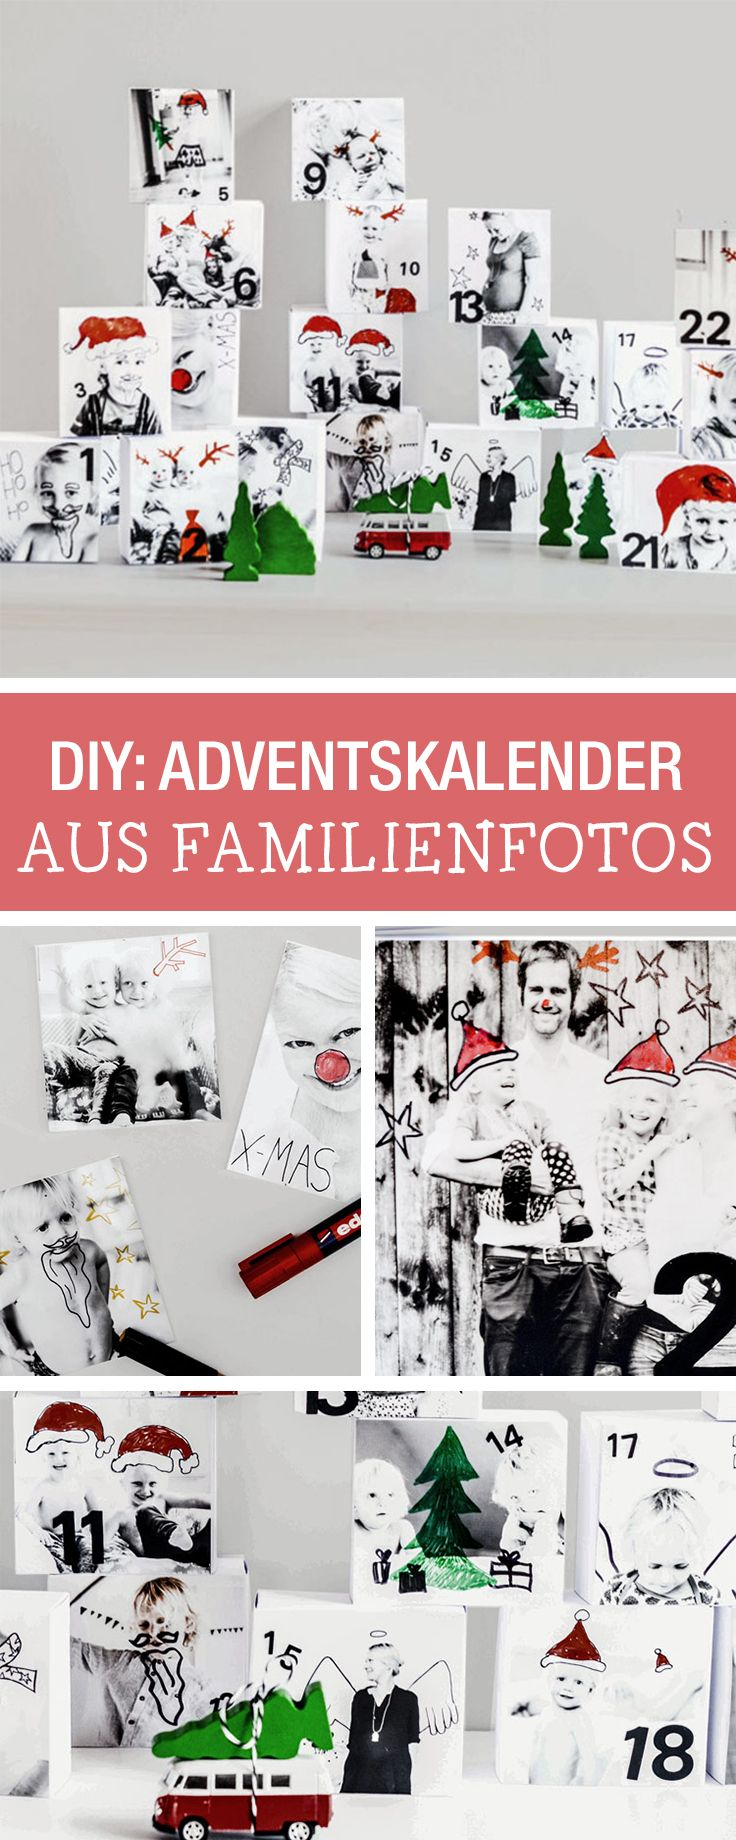 Der persönliche Adventskalender mit Famiienfotos / individual advents calendar made with family photos via DaWanda.com